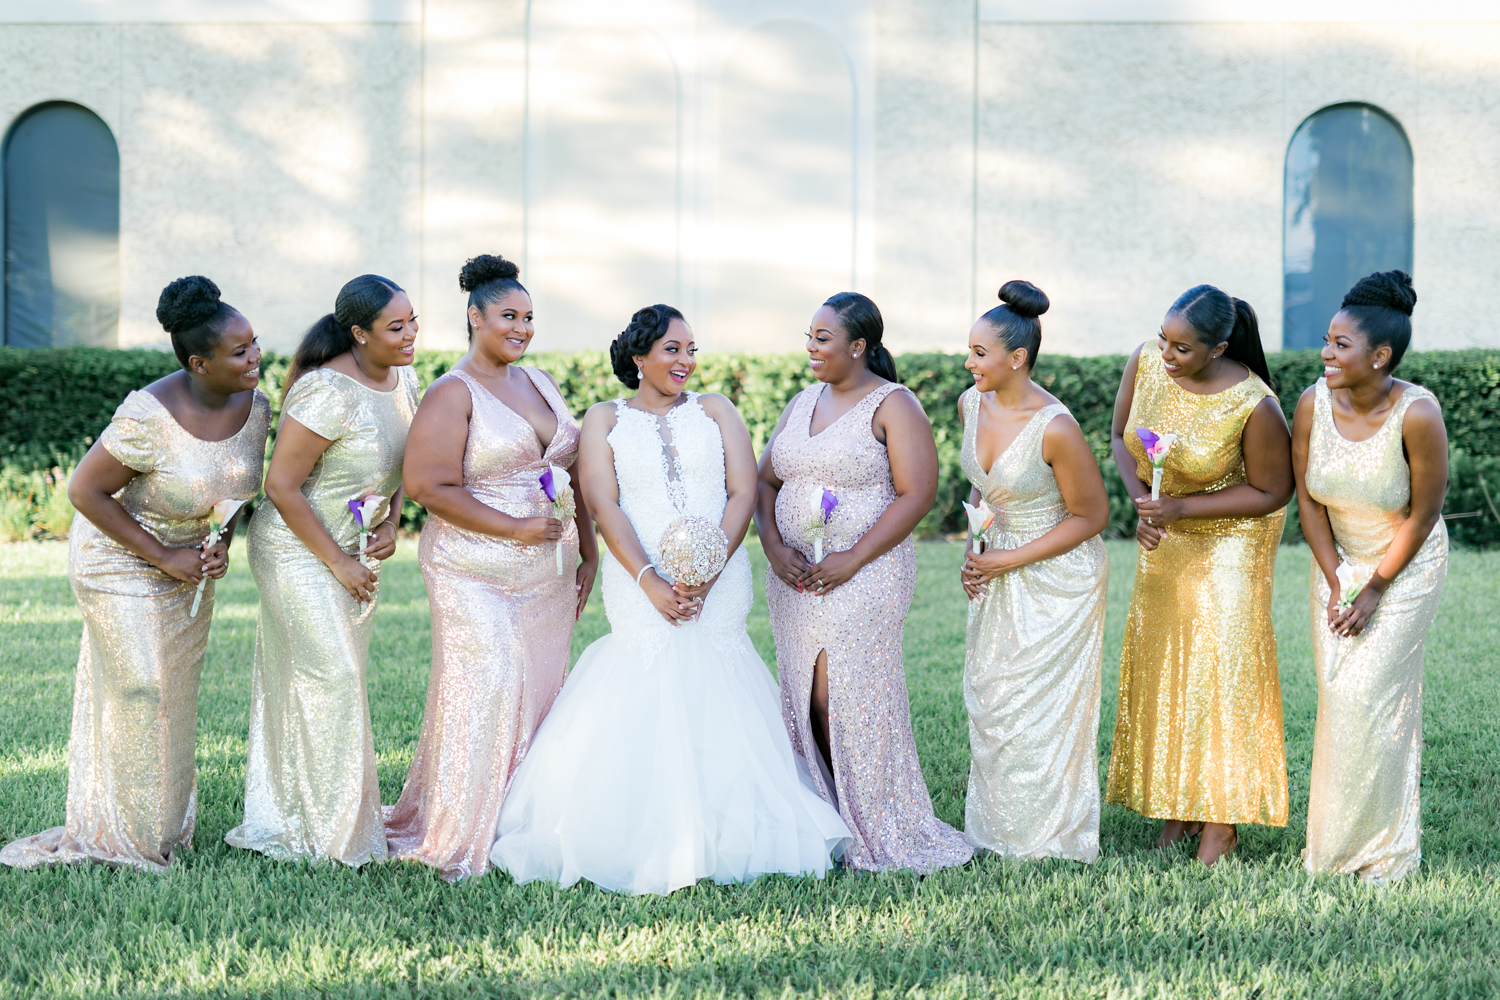 Bridesmaids with the bride. They are dressed in a pastel color palette.